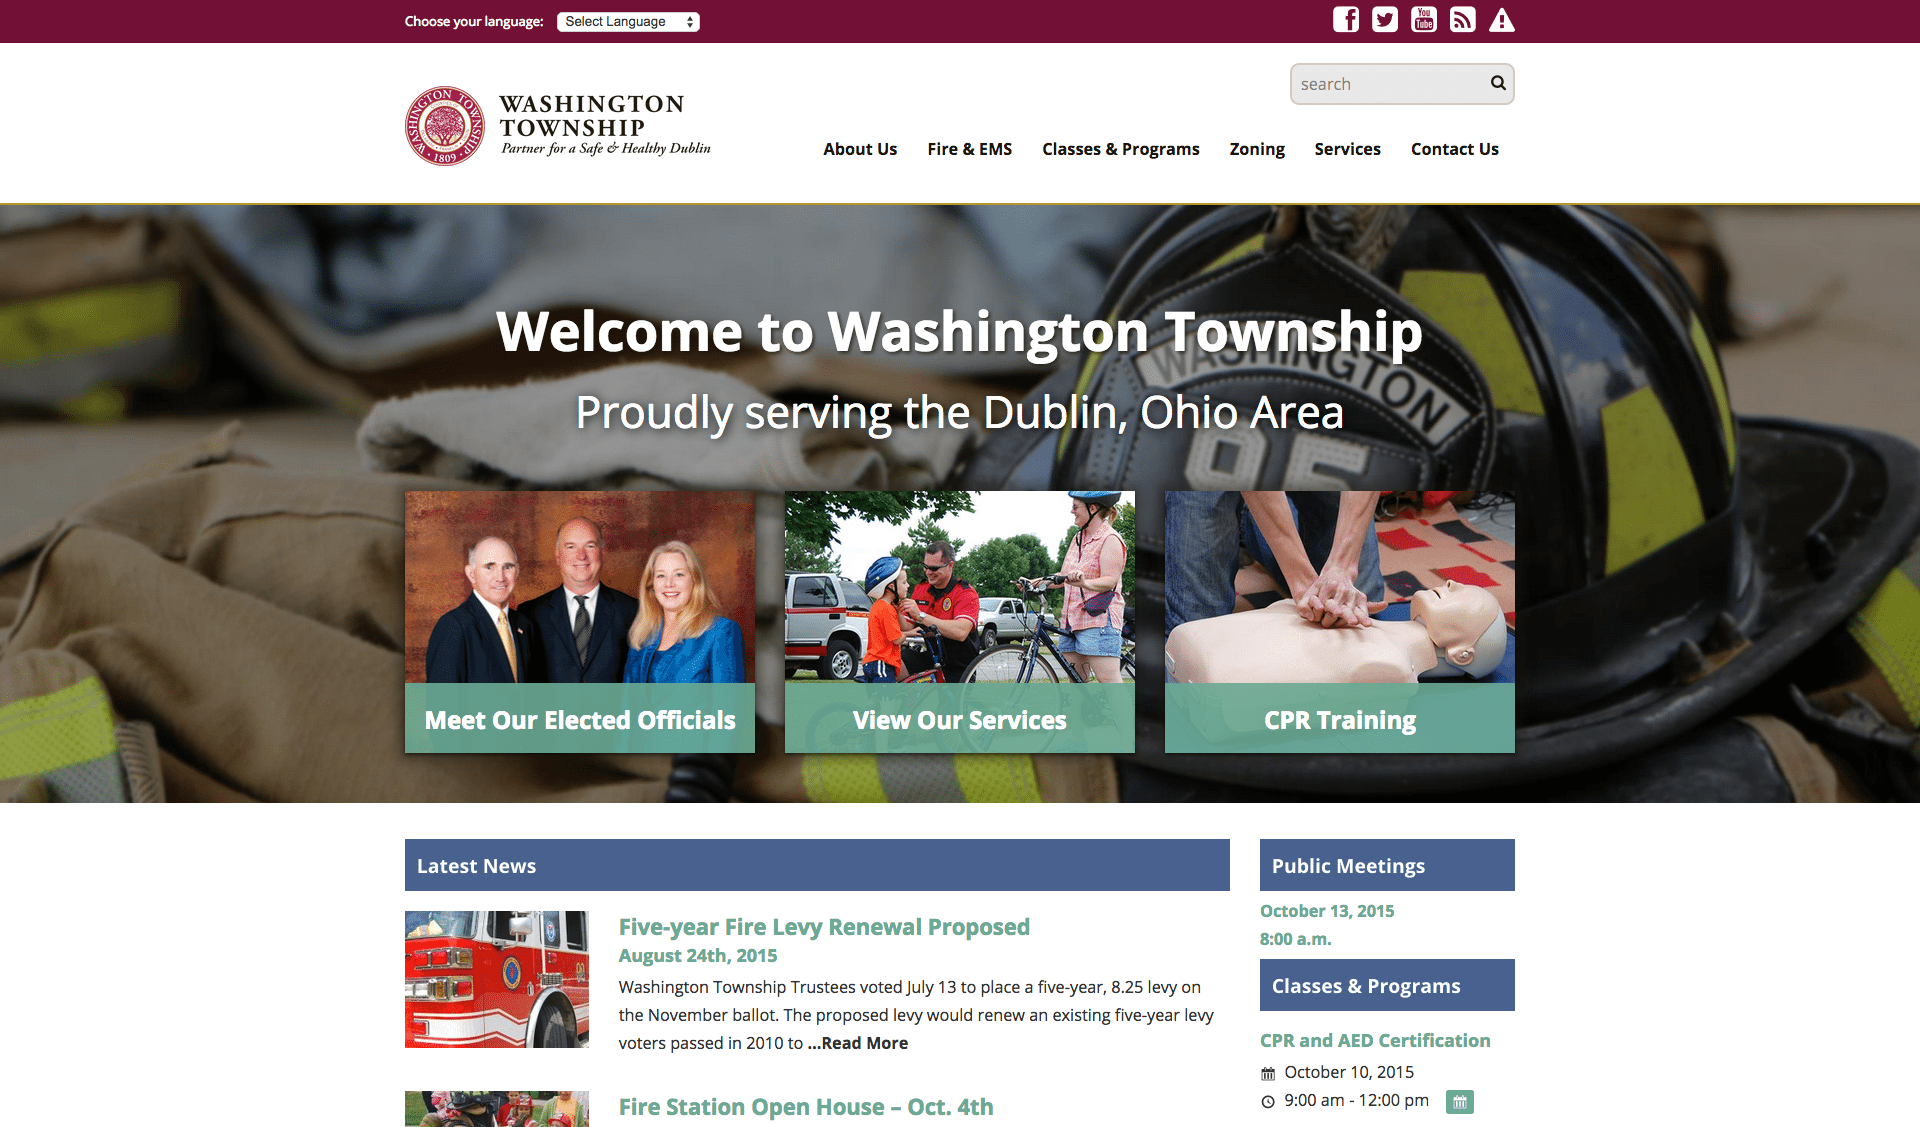 Washington Township in Dublin, Ohio announces launch of their new website